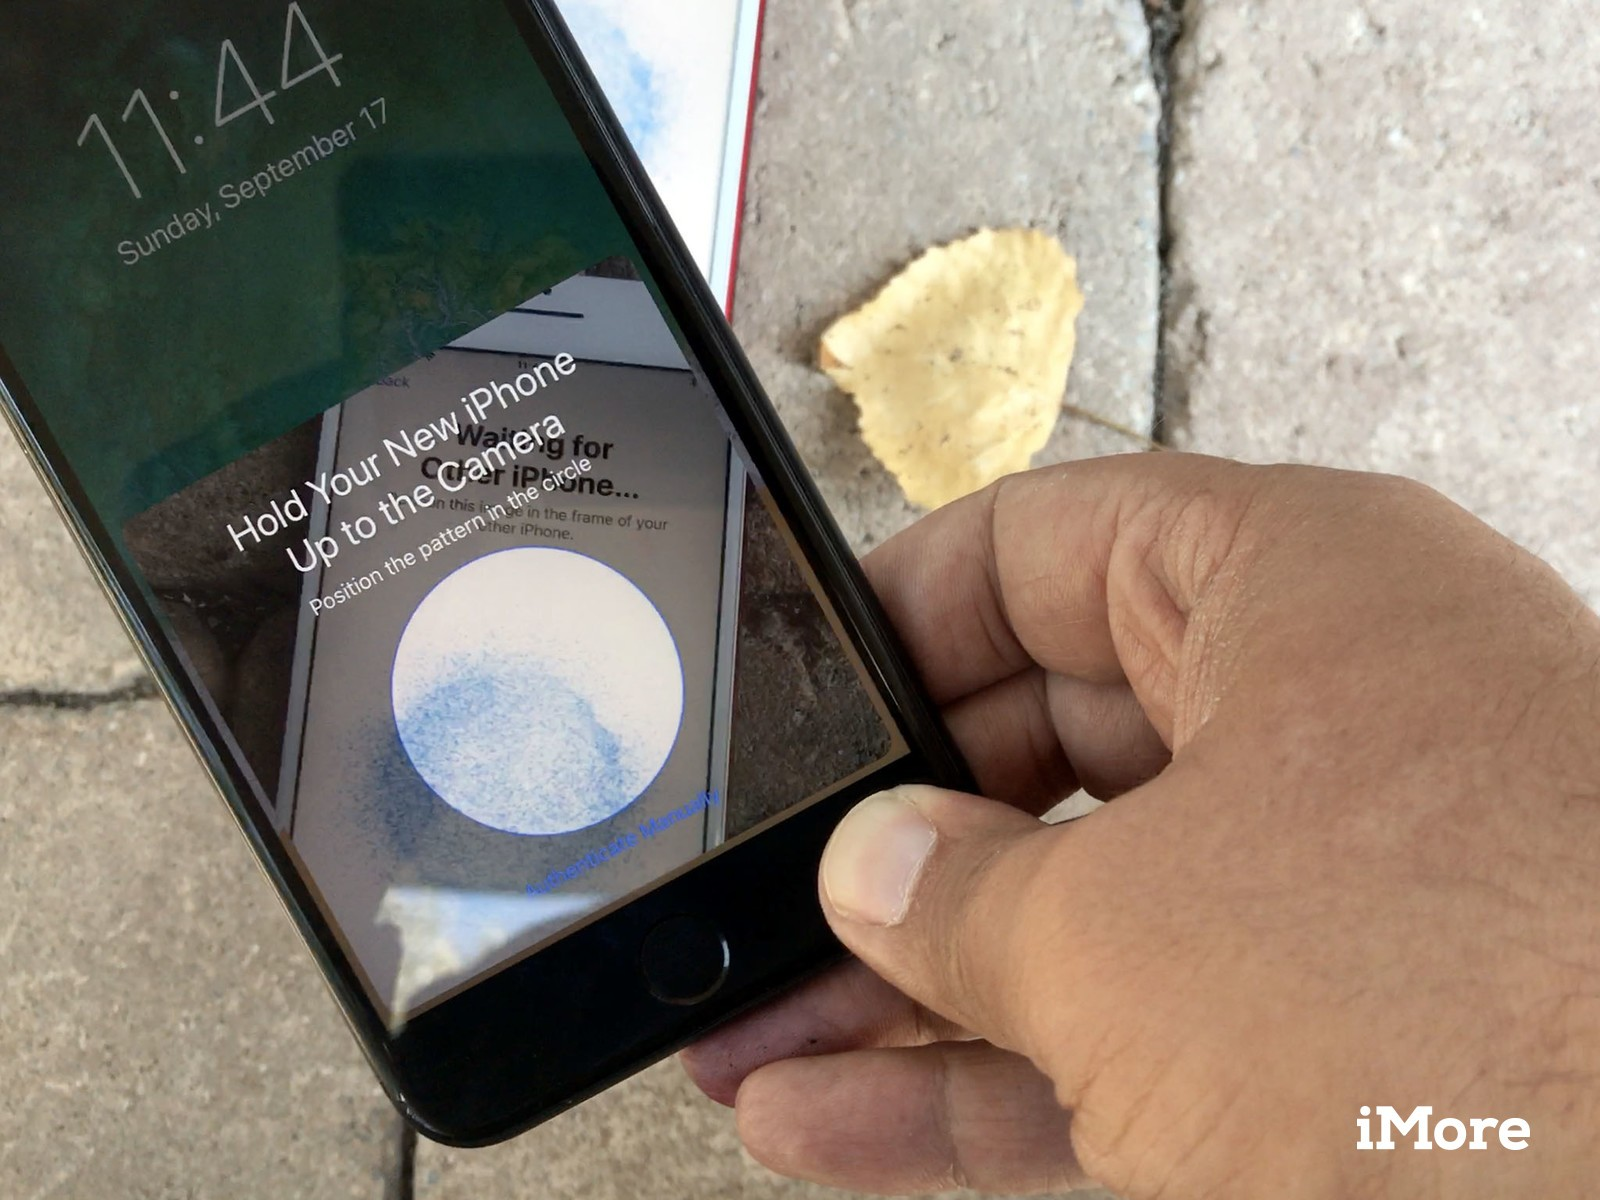 How to move info from old iphone to new phone